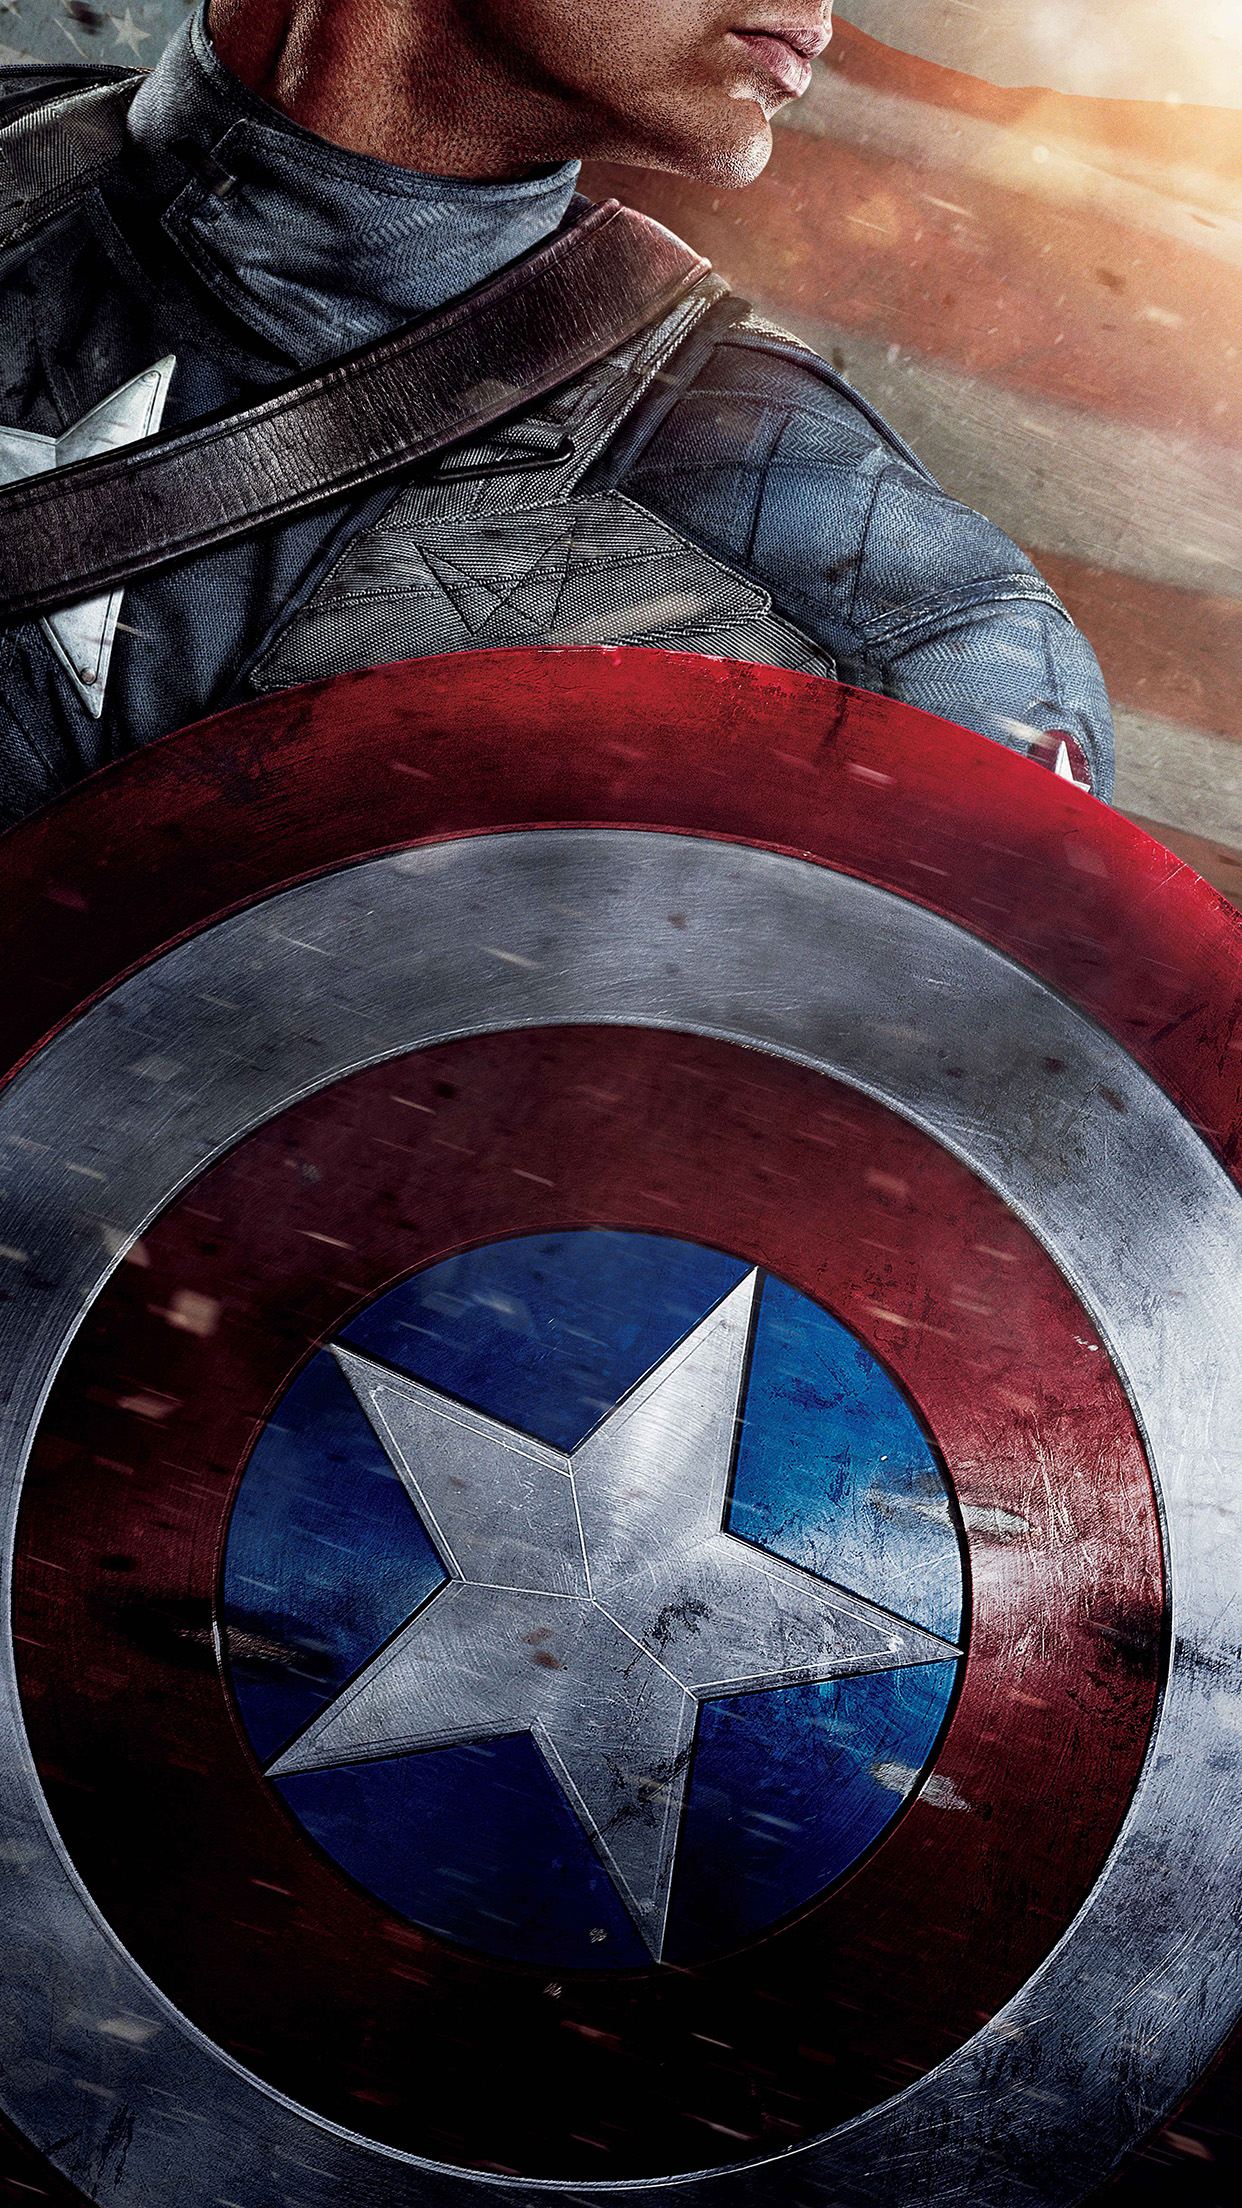 Captain America Poster Film Hero Art Android wallpaper - Android HD wallpapers